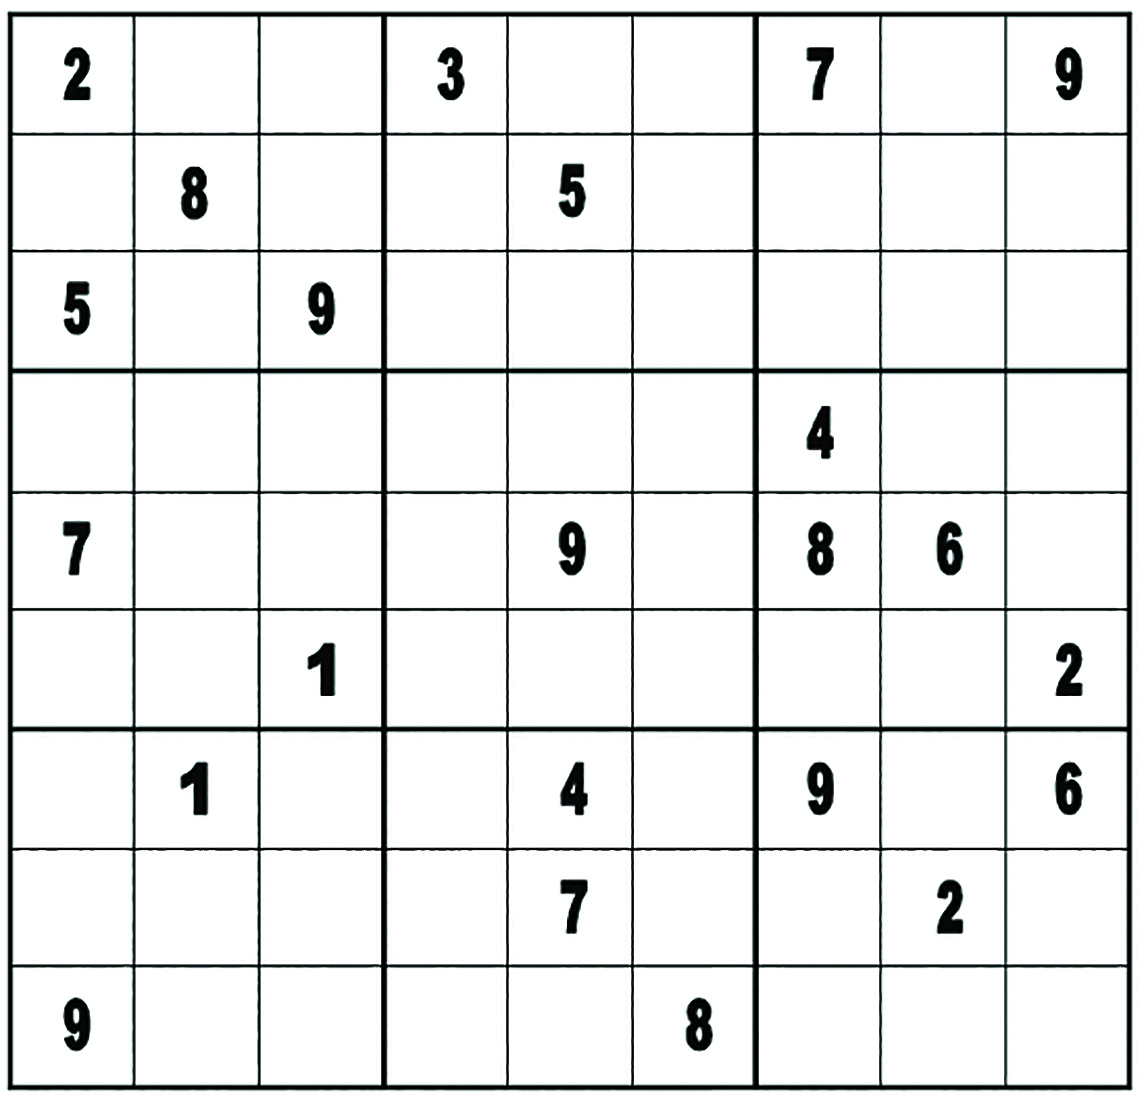 VIE Magazine Thinking inside the box Sudoku Solution